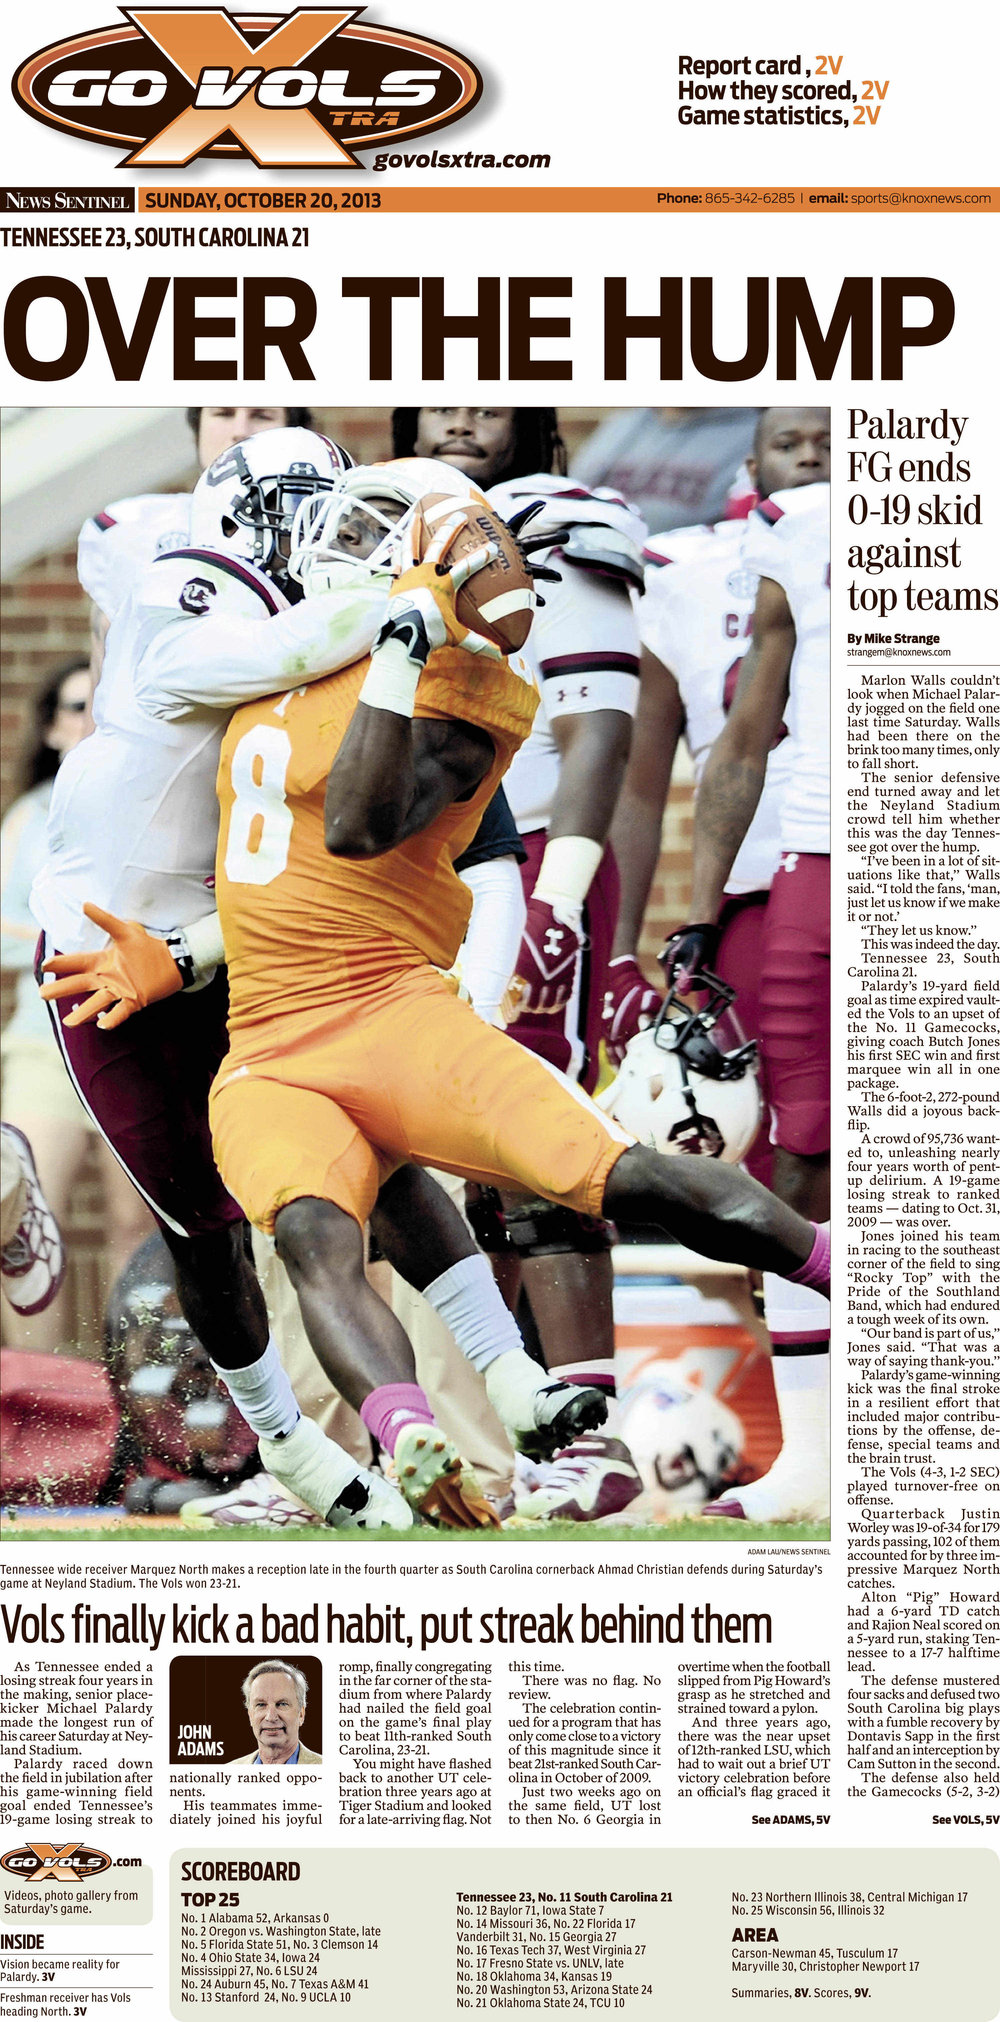 Knoxville News Sentinel. Photo by Adam Lau.